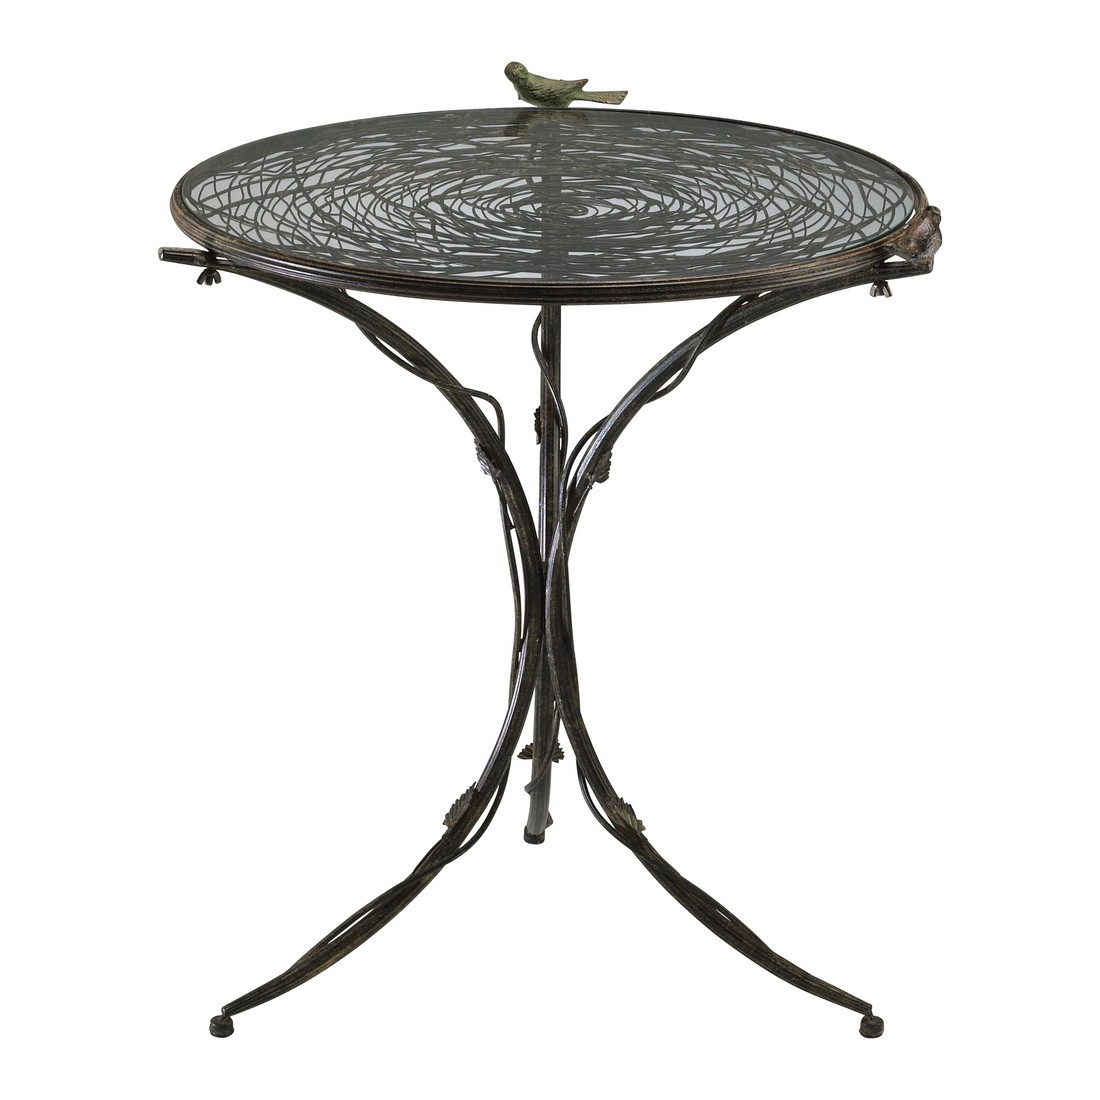 Cyan Design Bird Bistro 29 Table in Muted Rust